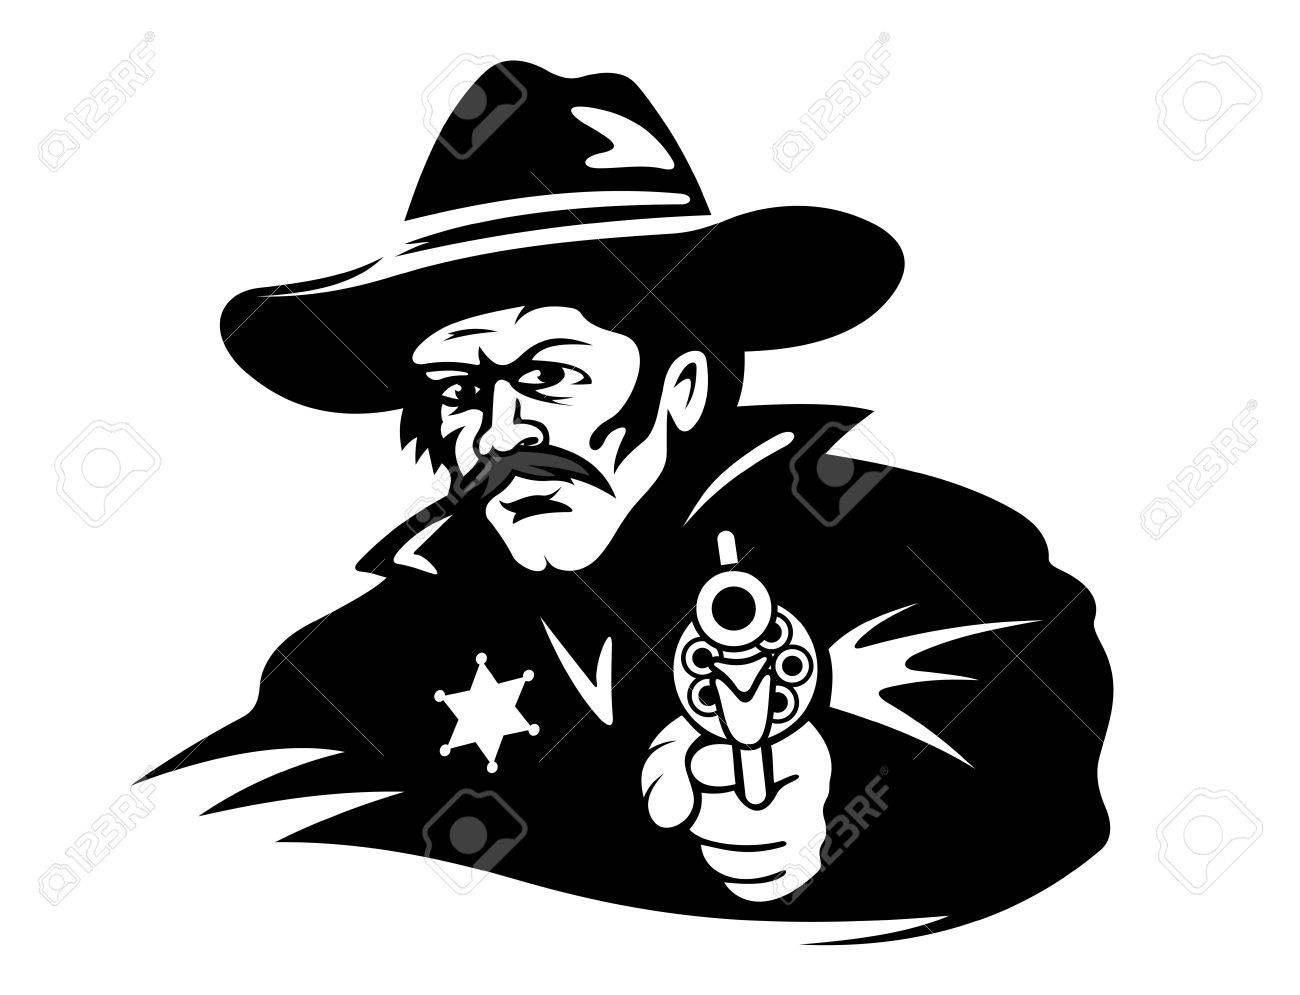 Sheriff With Gun in Cartoon